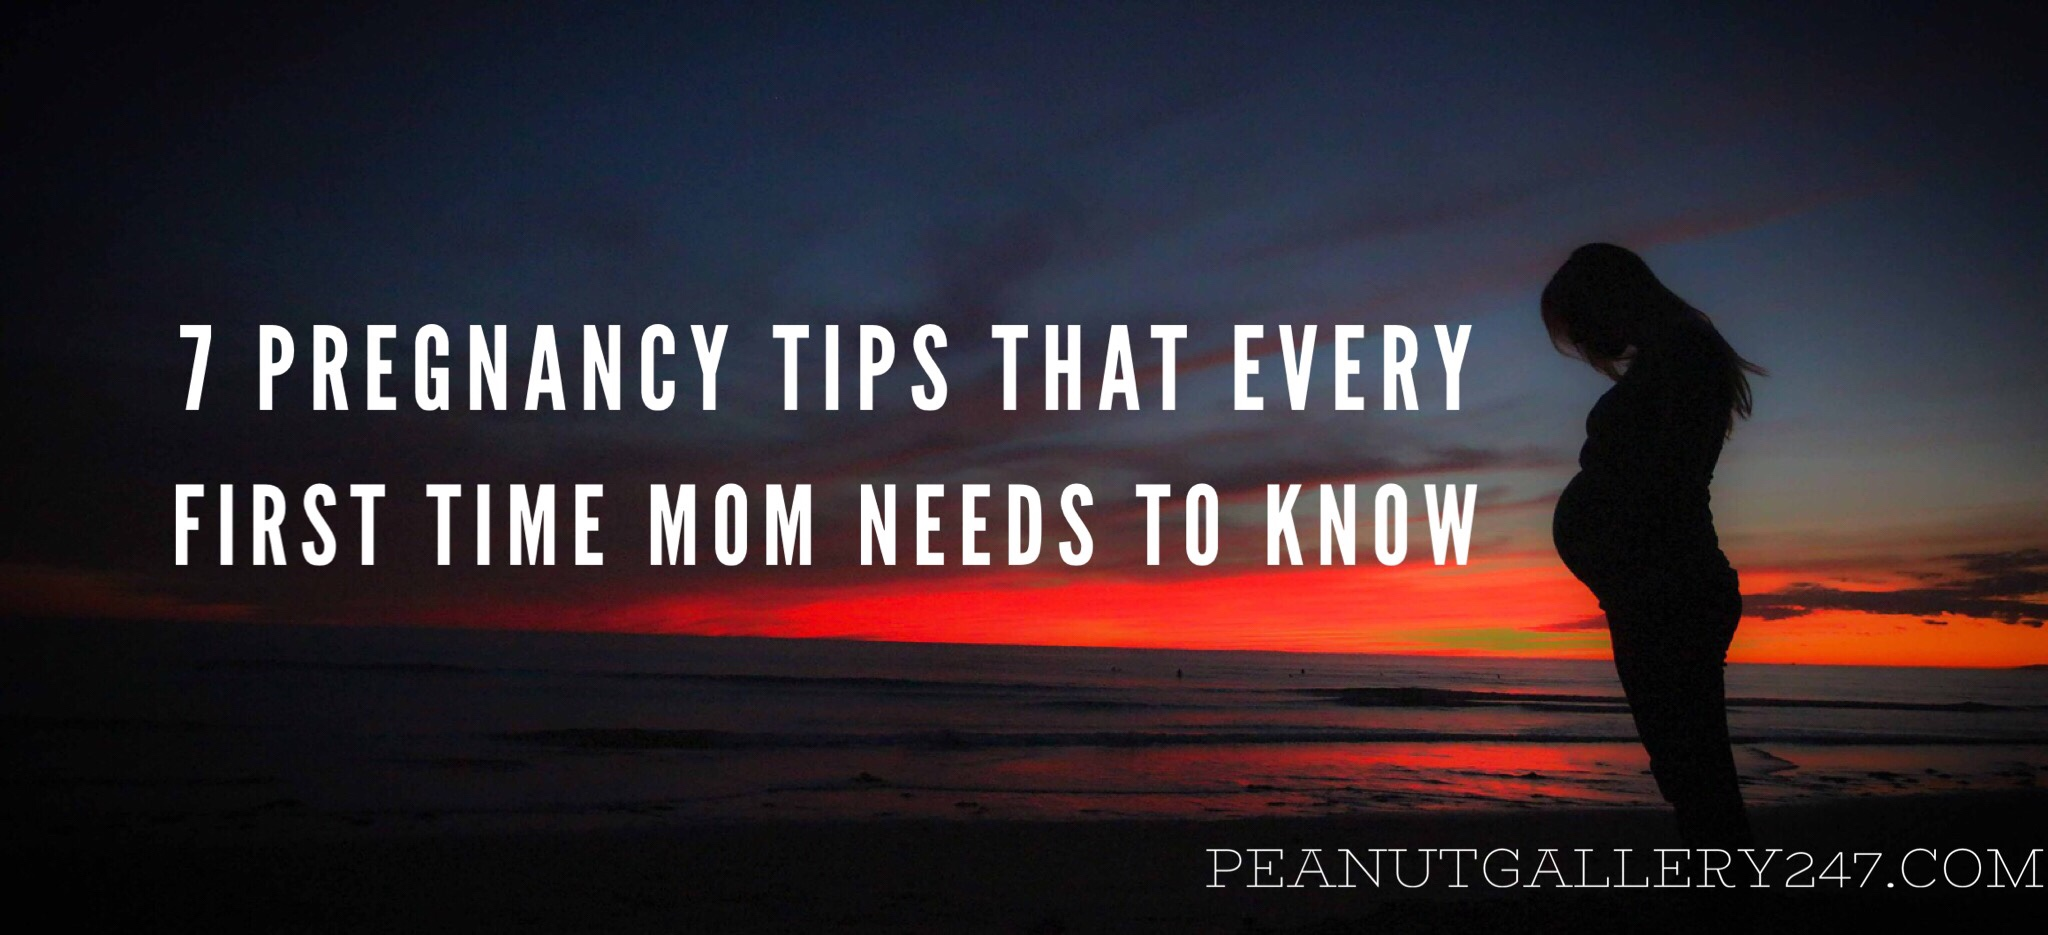 7 Pregnancy Tips Every First Time Mom Needs to Know